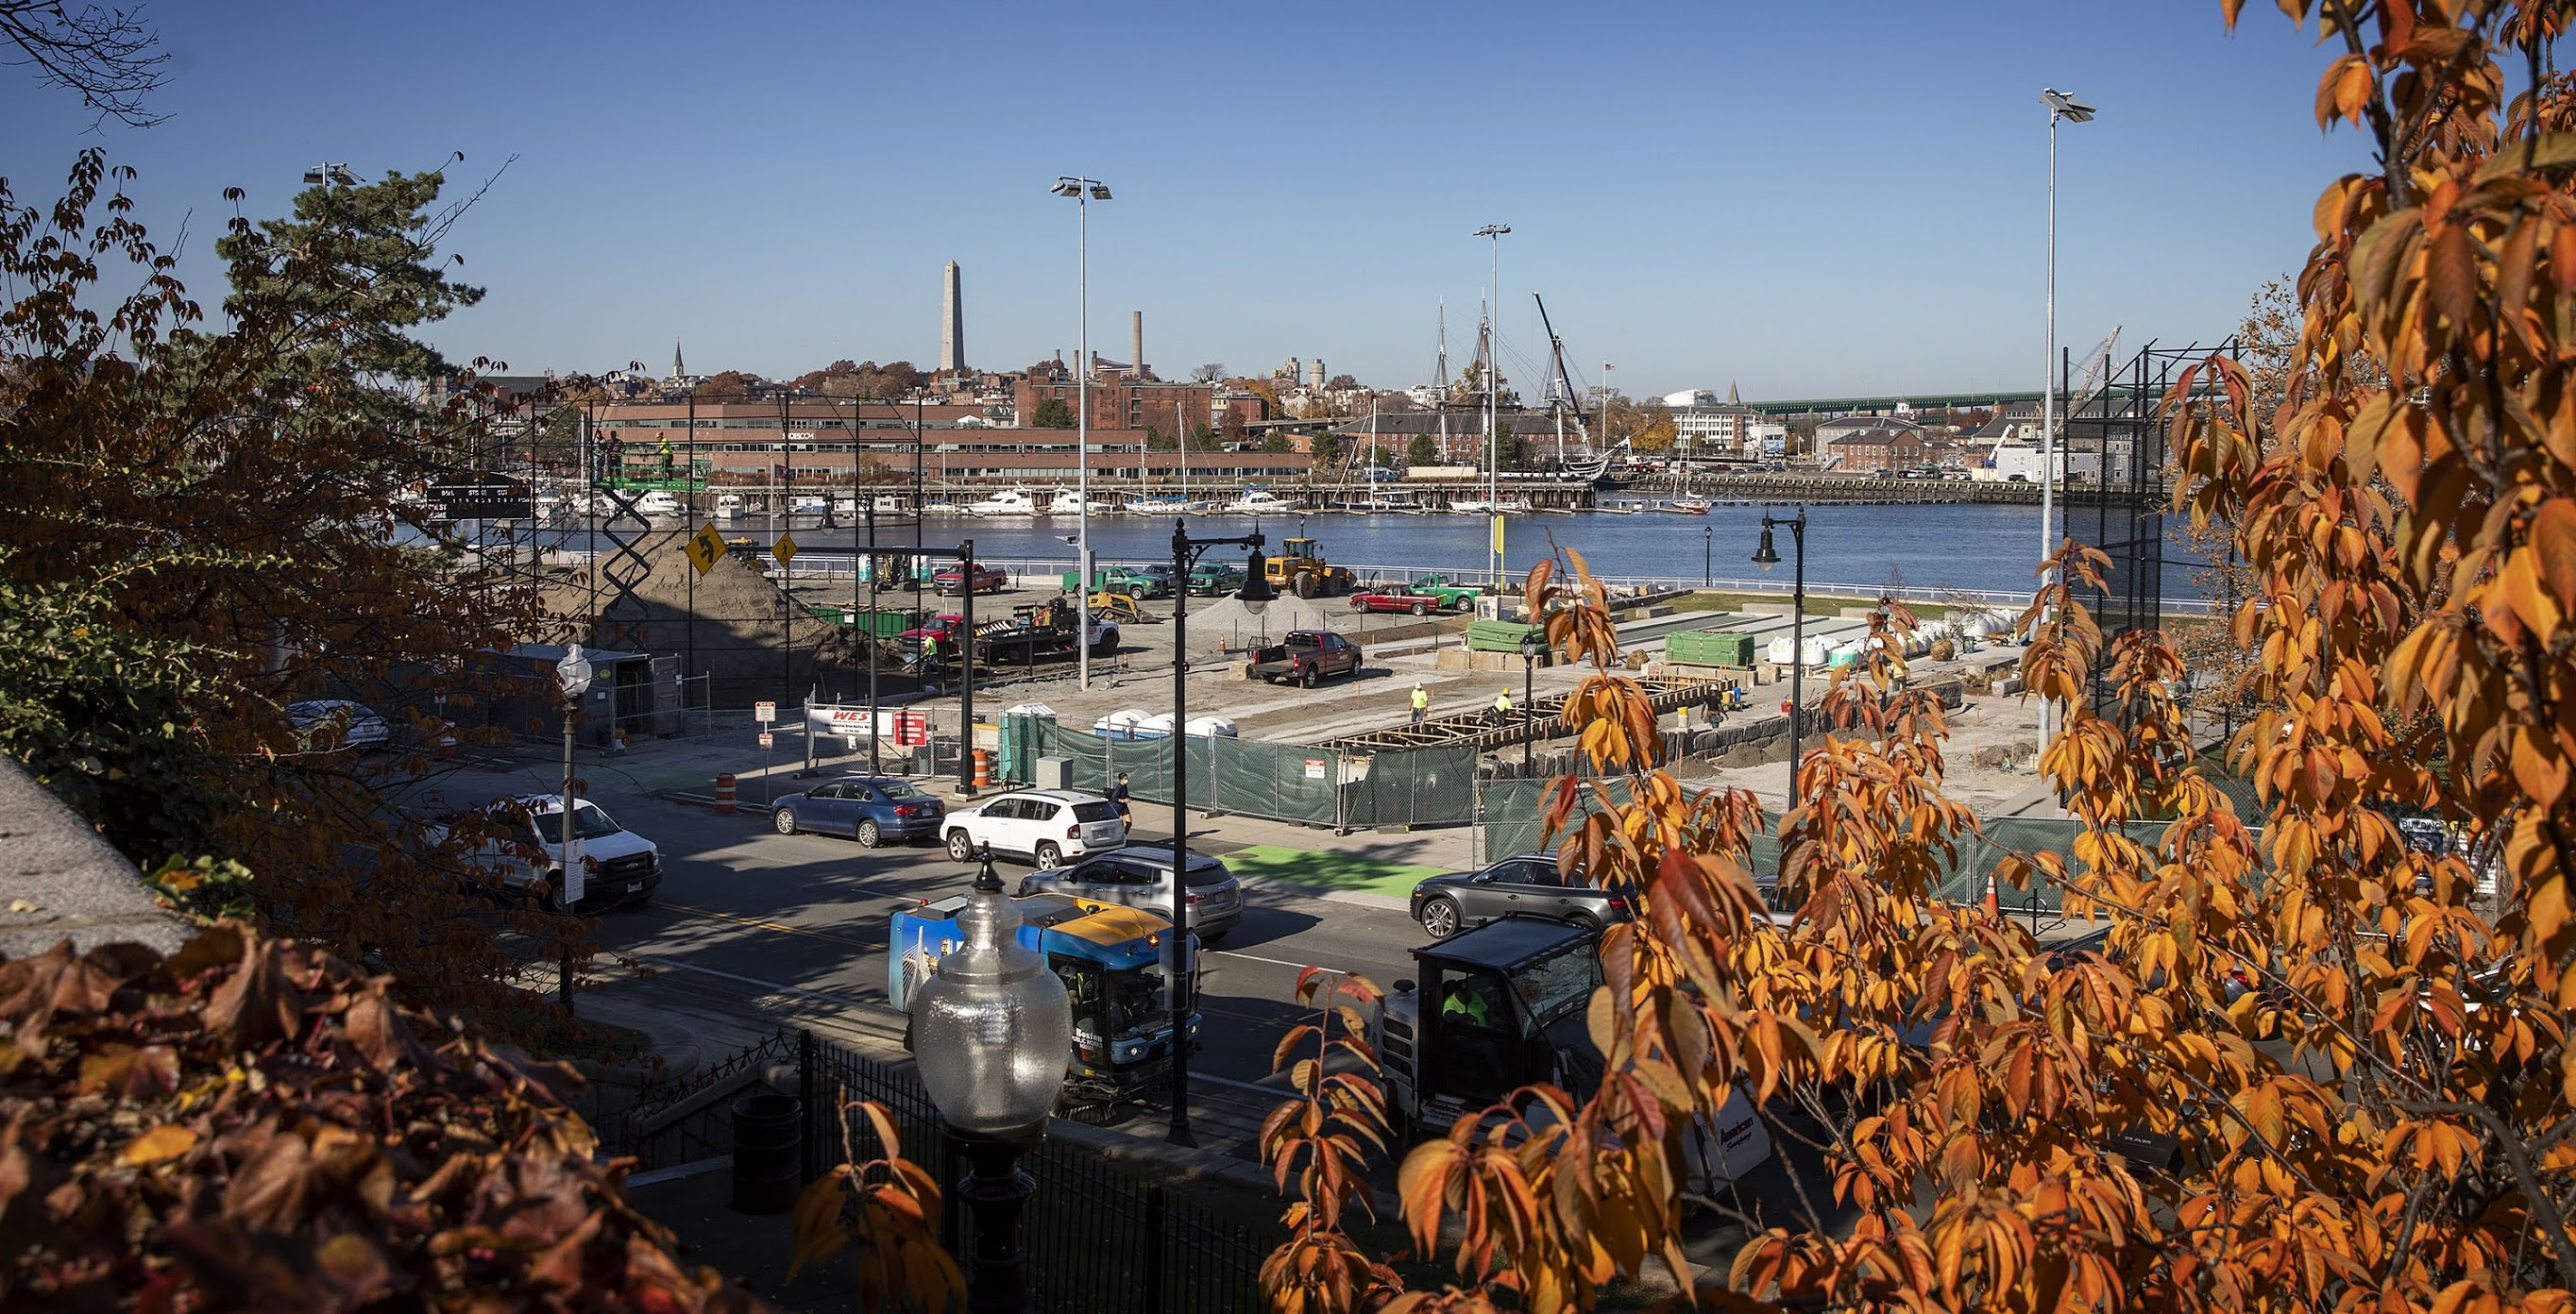 The view from Langone Park under construction, looking across the harbor to Bunker Hill and the USS Constitution. (Robin Lubbock/WBUR)